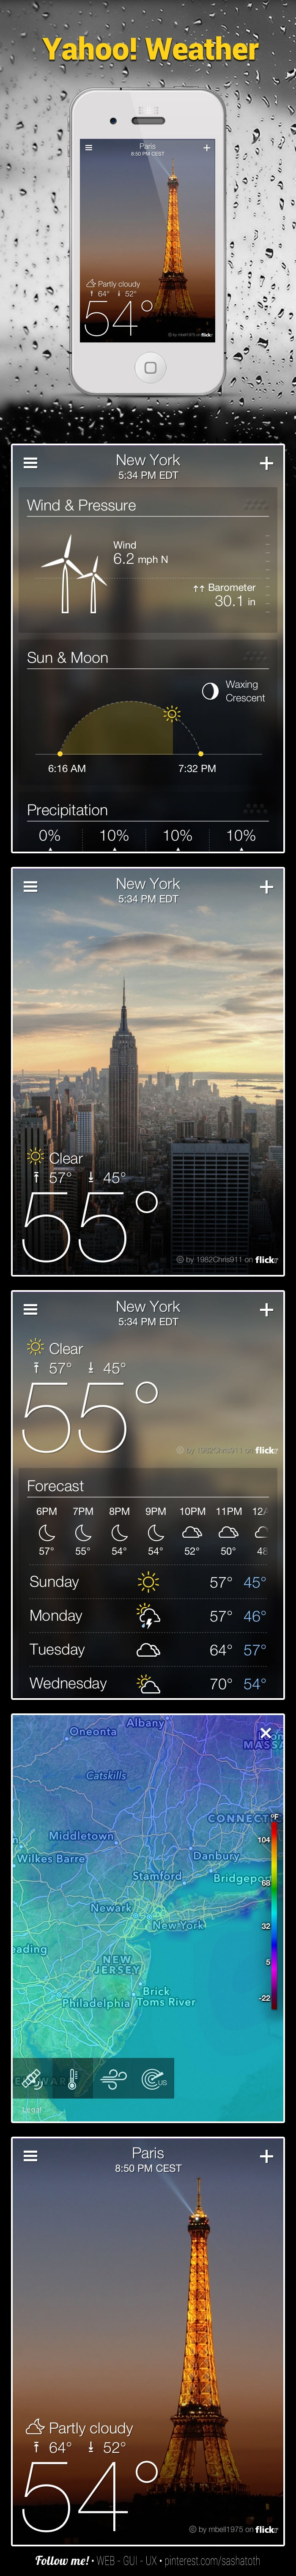 Yahoo! WEATHER *** Yahoo has launched a new standalone iPhone weather app called Yahoo! Weather, along with an upgraded version of its Yahoo! Mail app that brings the native mail app experience to the iPad. source:macrumors *** #iphone #yahoo #weather